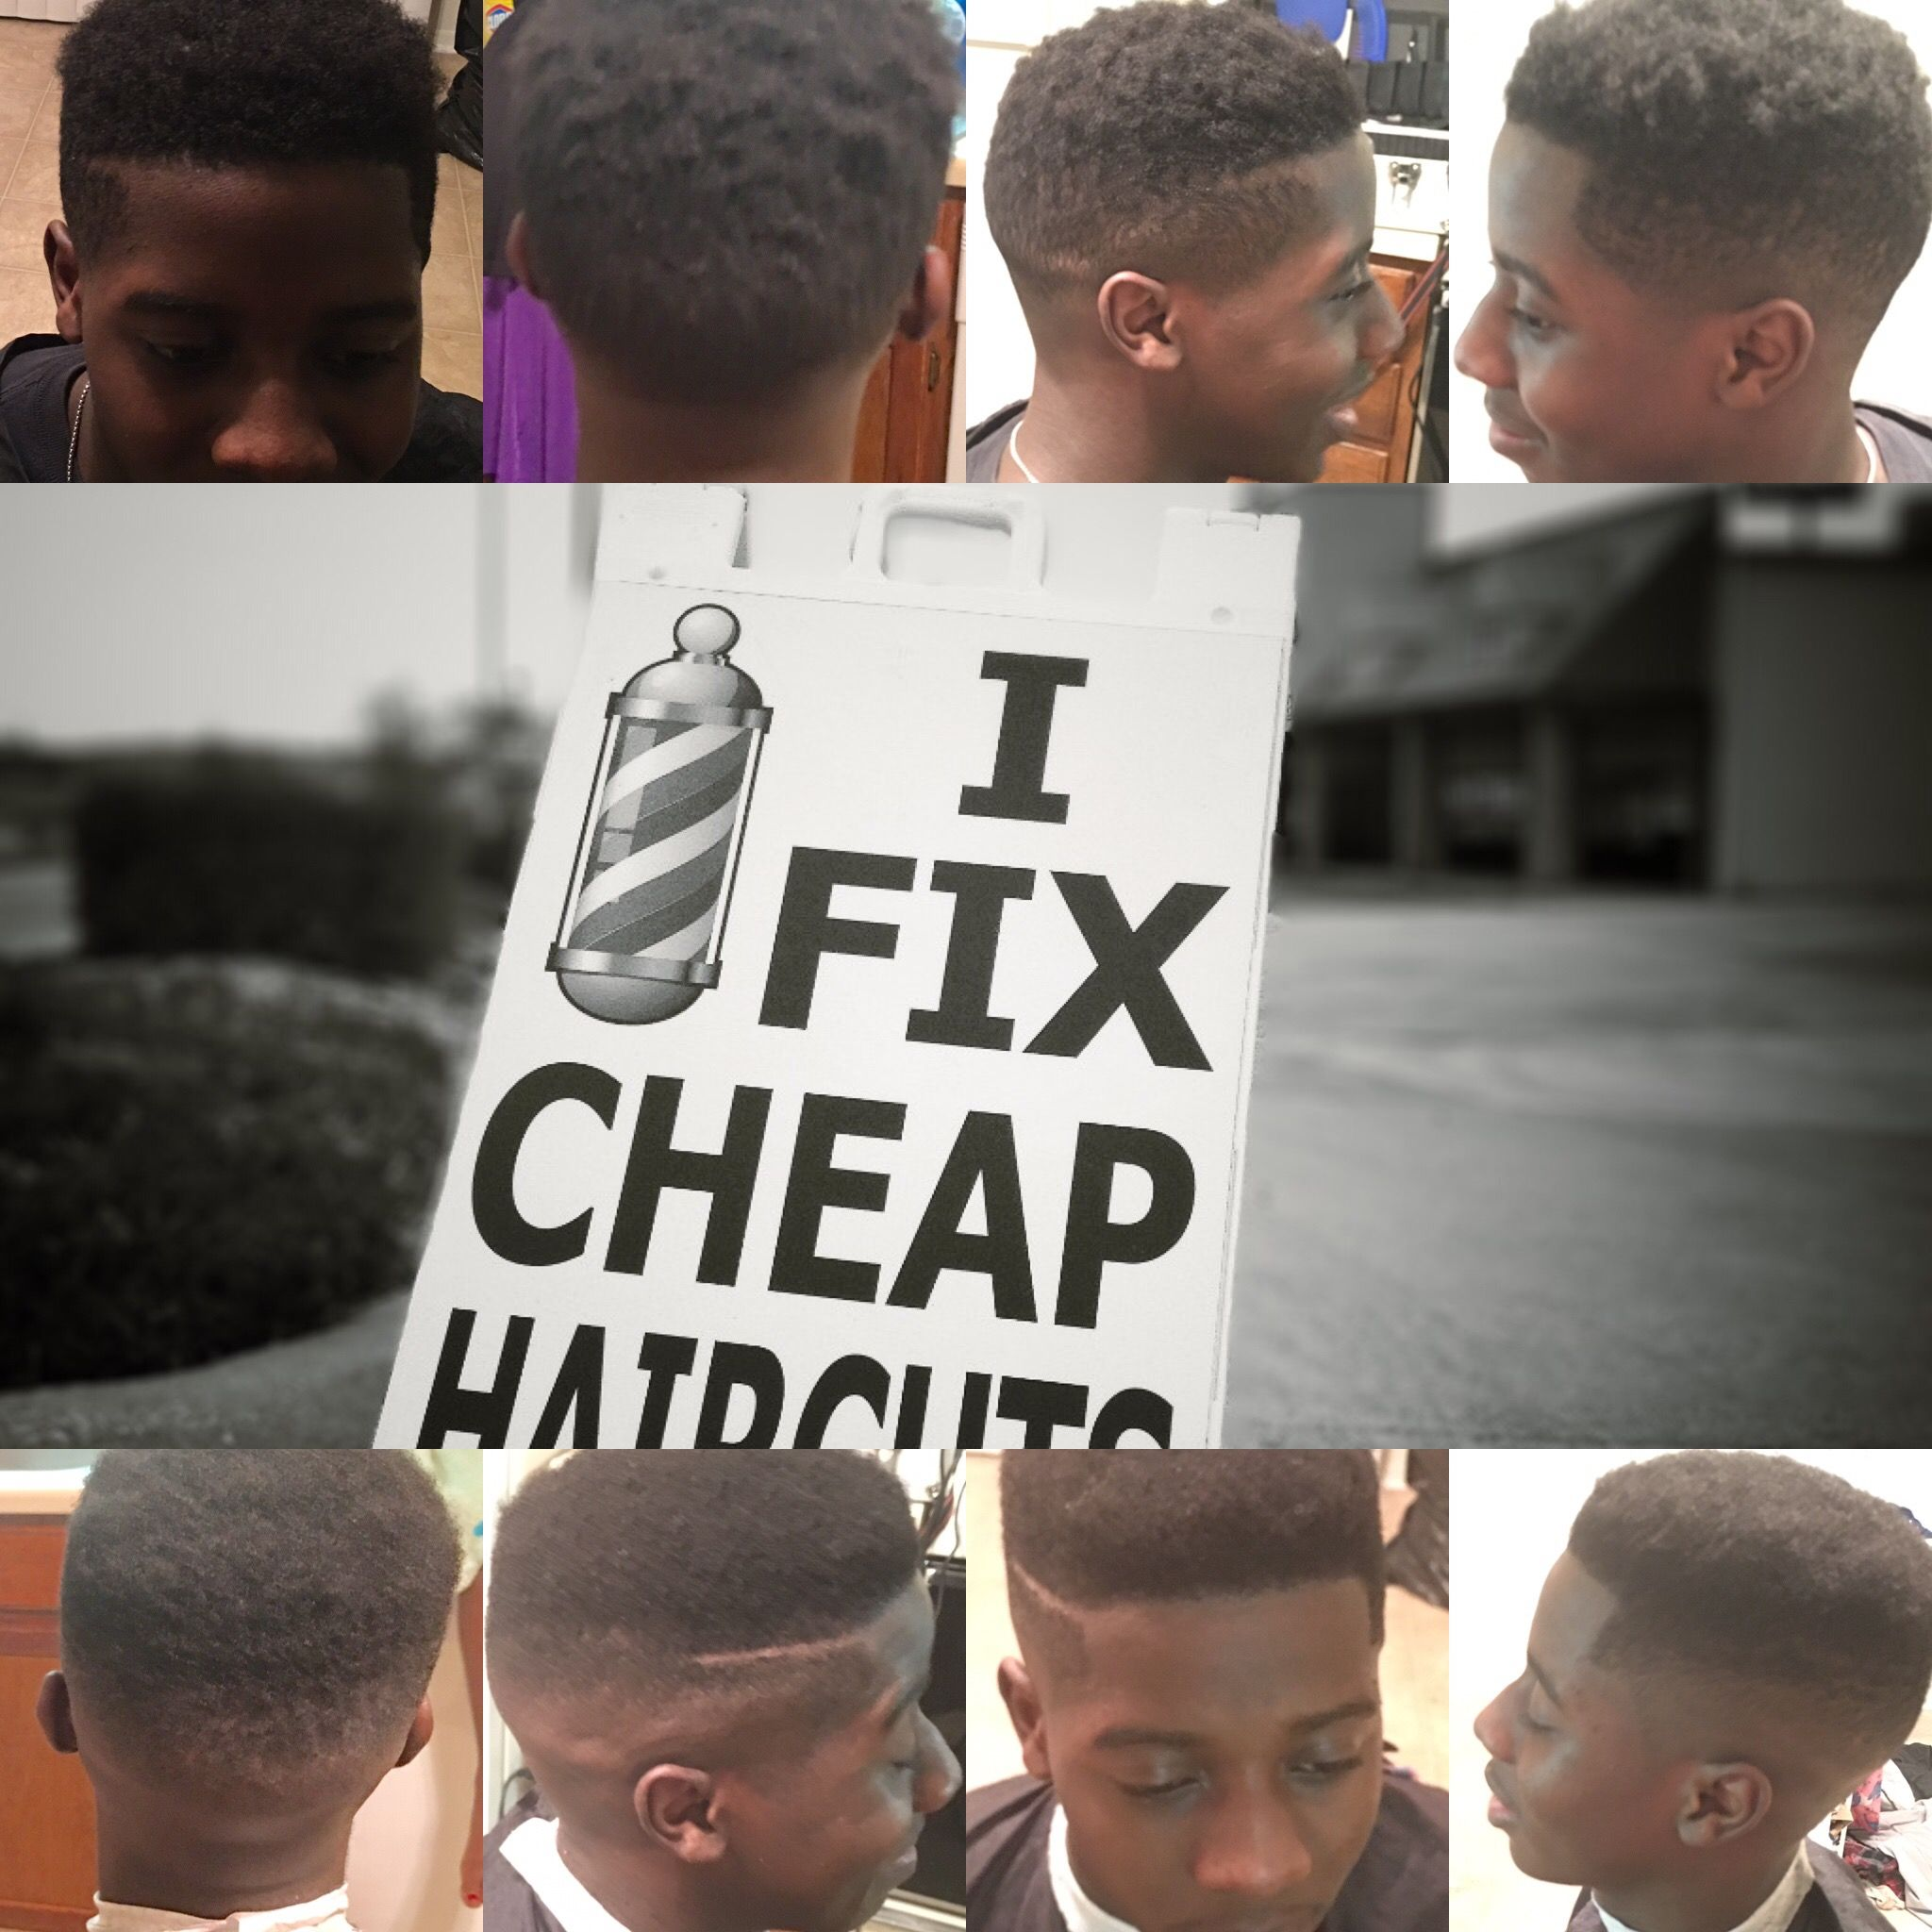 The Top Four Are Pictures Of A Haircut Done By Another Barber On